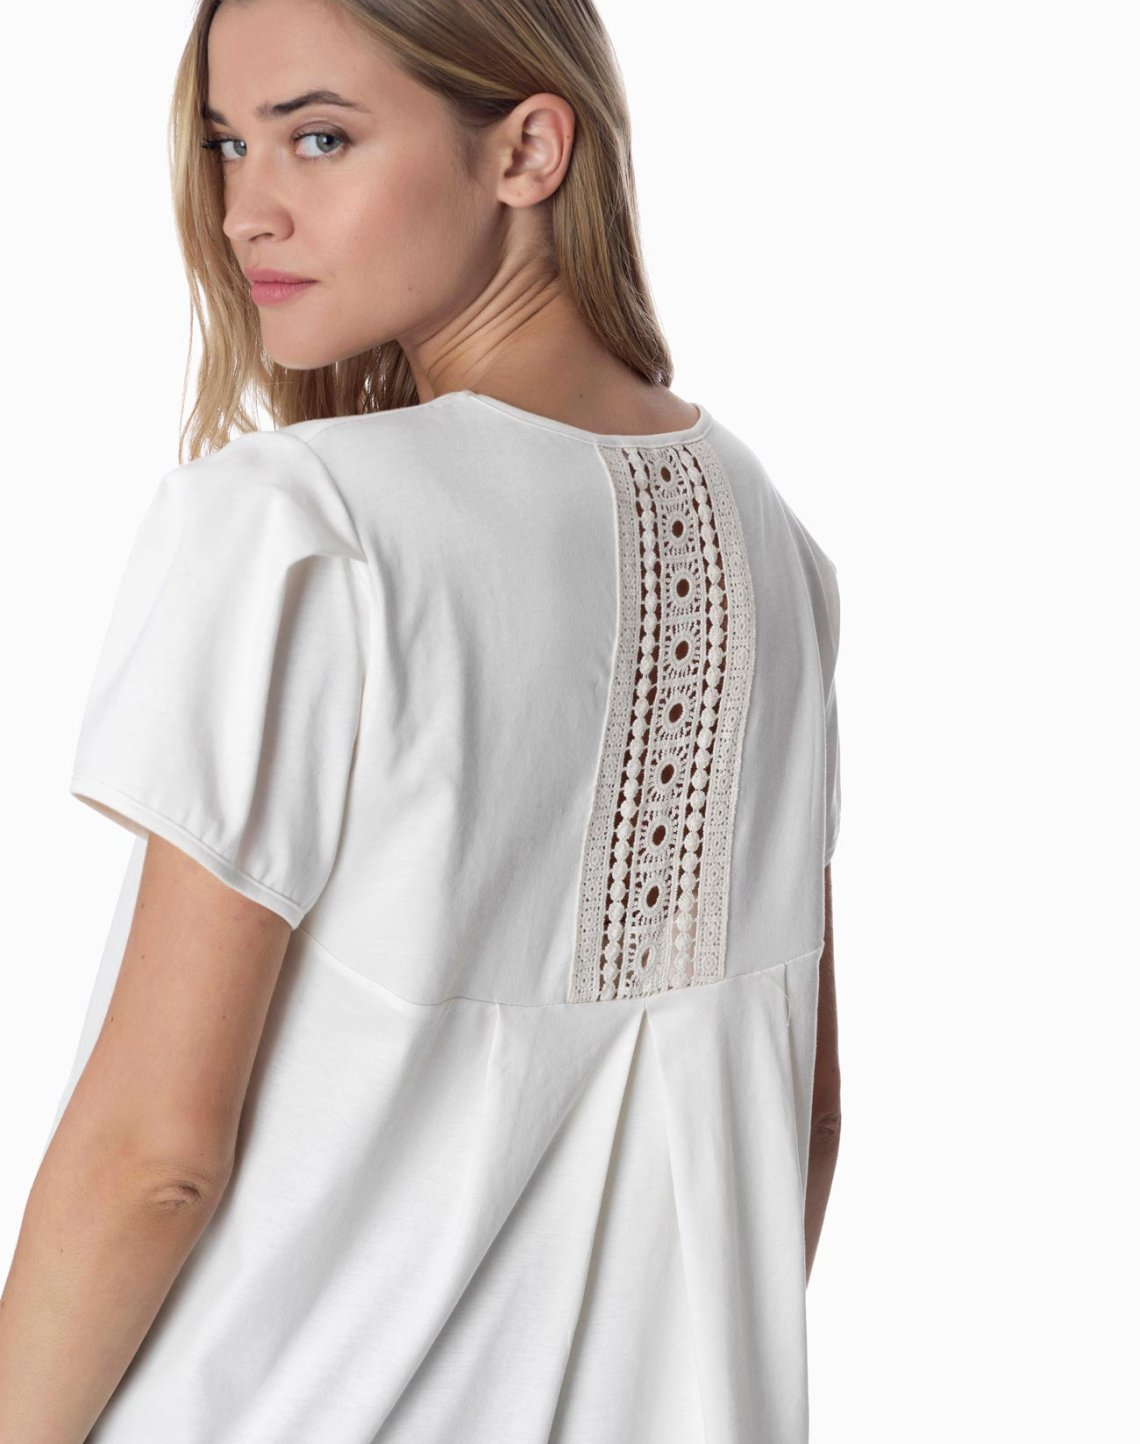 Top with detail lace